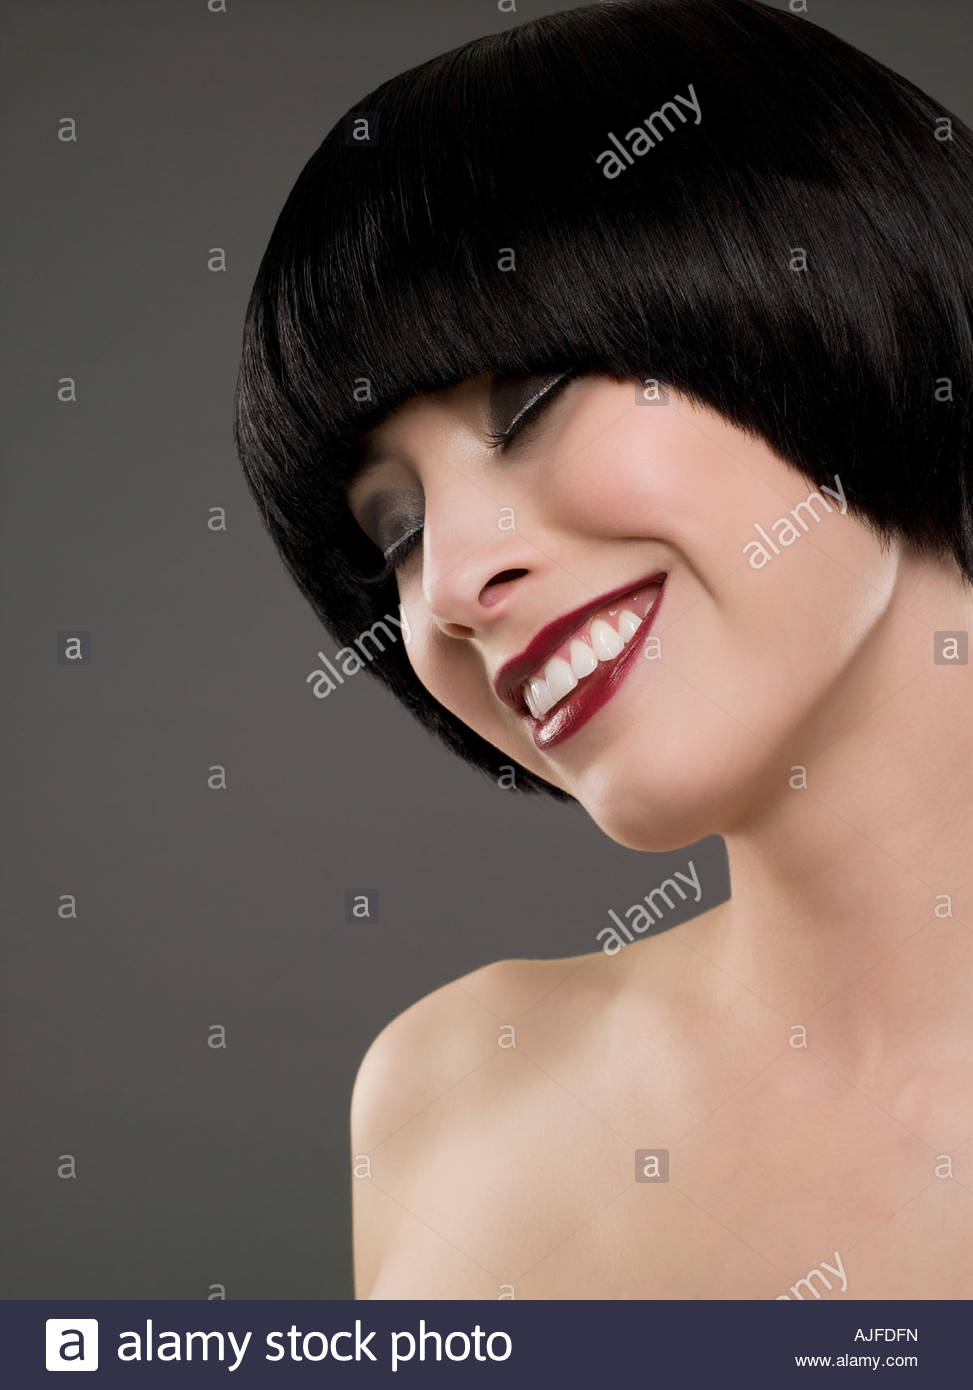 Smiling woman with a bob hairstyle - Stock Image